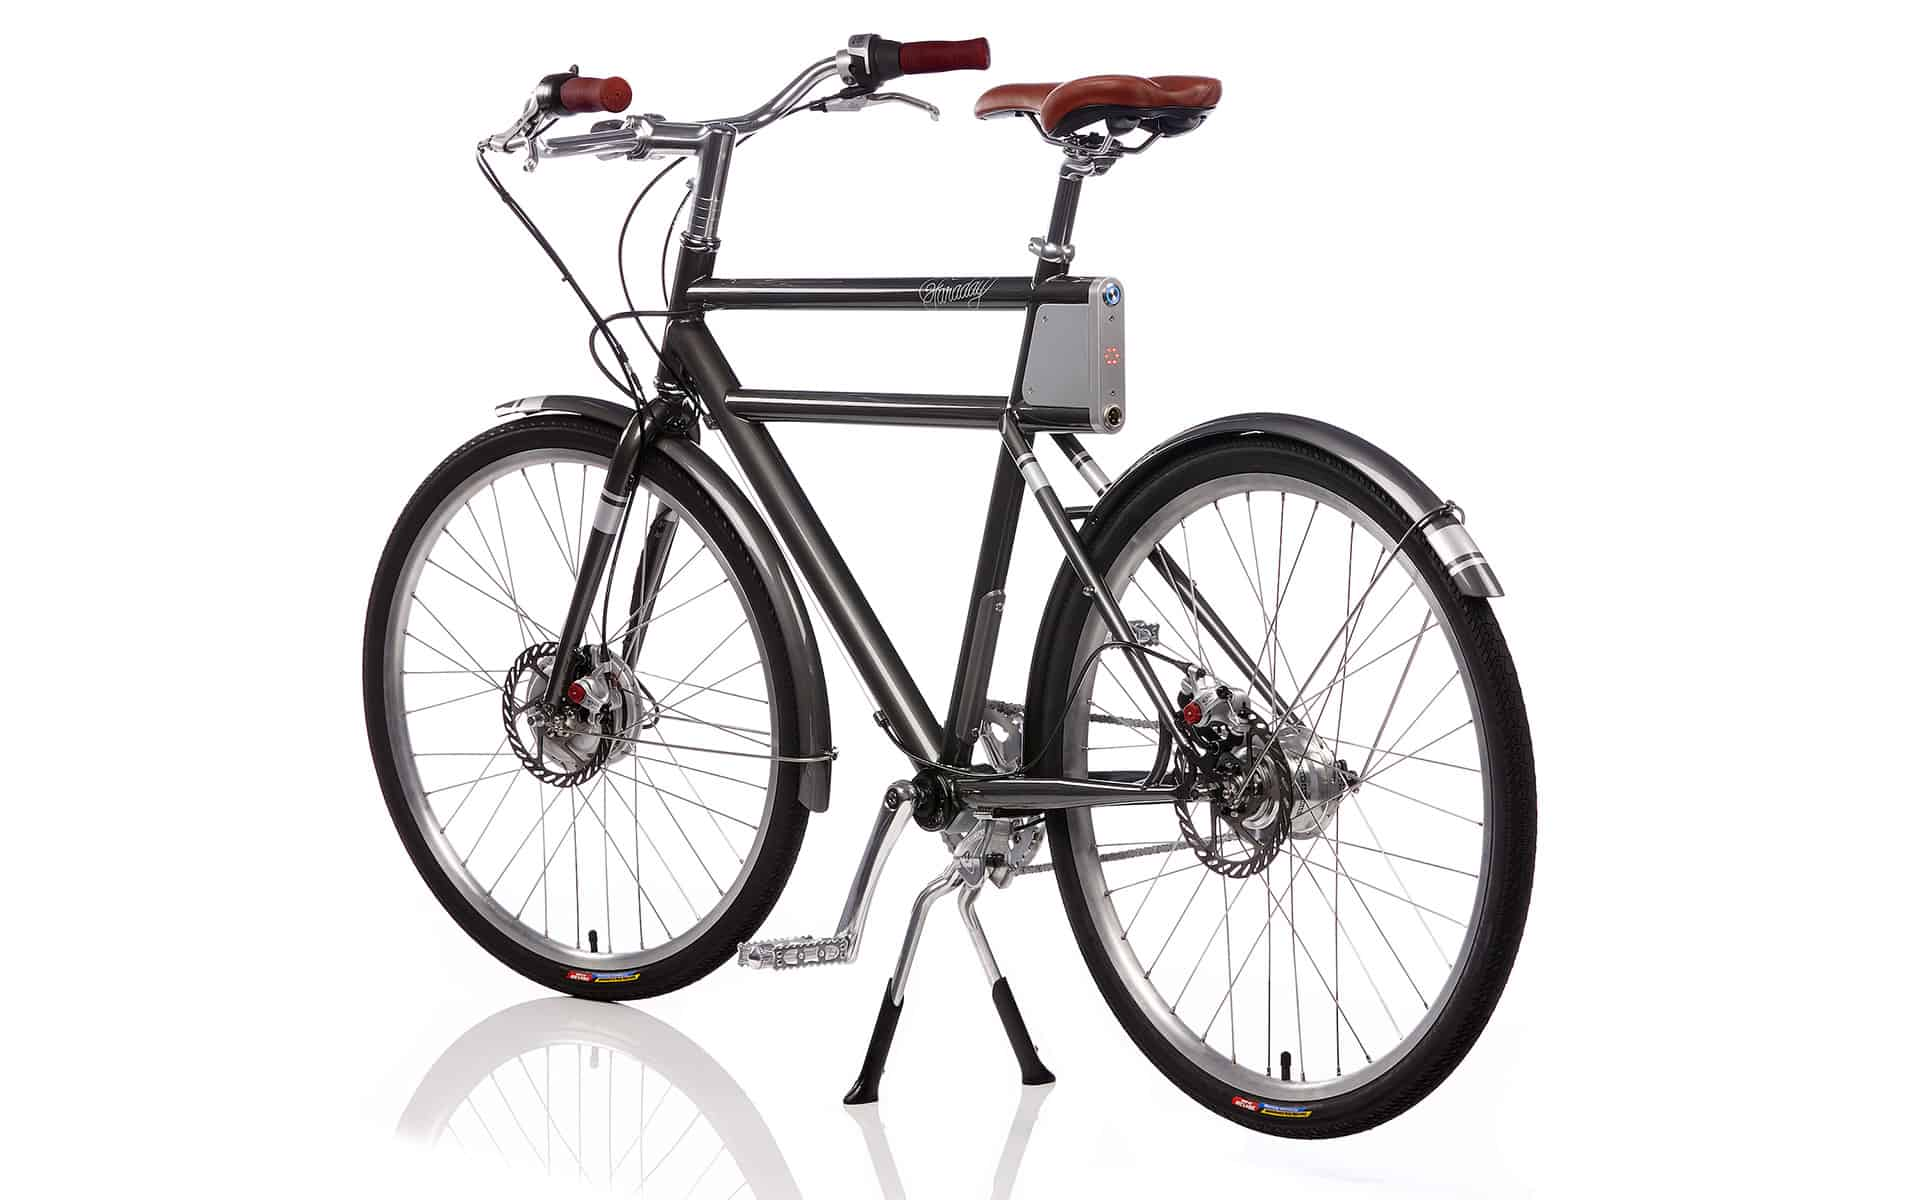 Faraday_Porteur_S_Electric_Bicycle_3